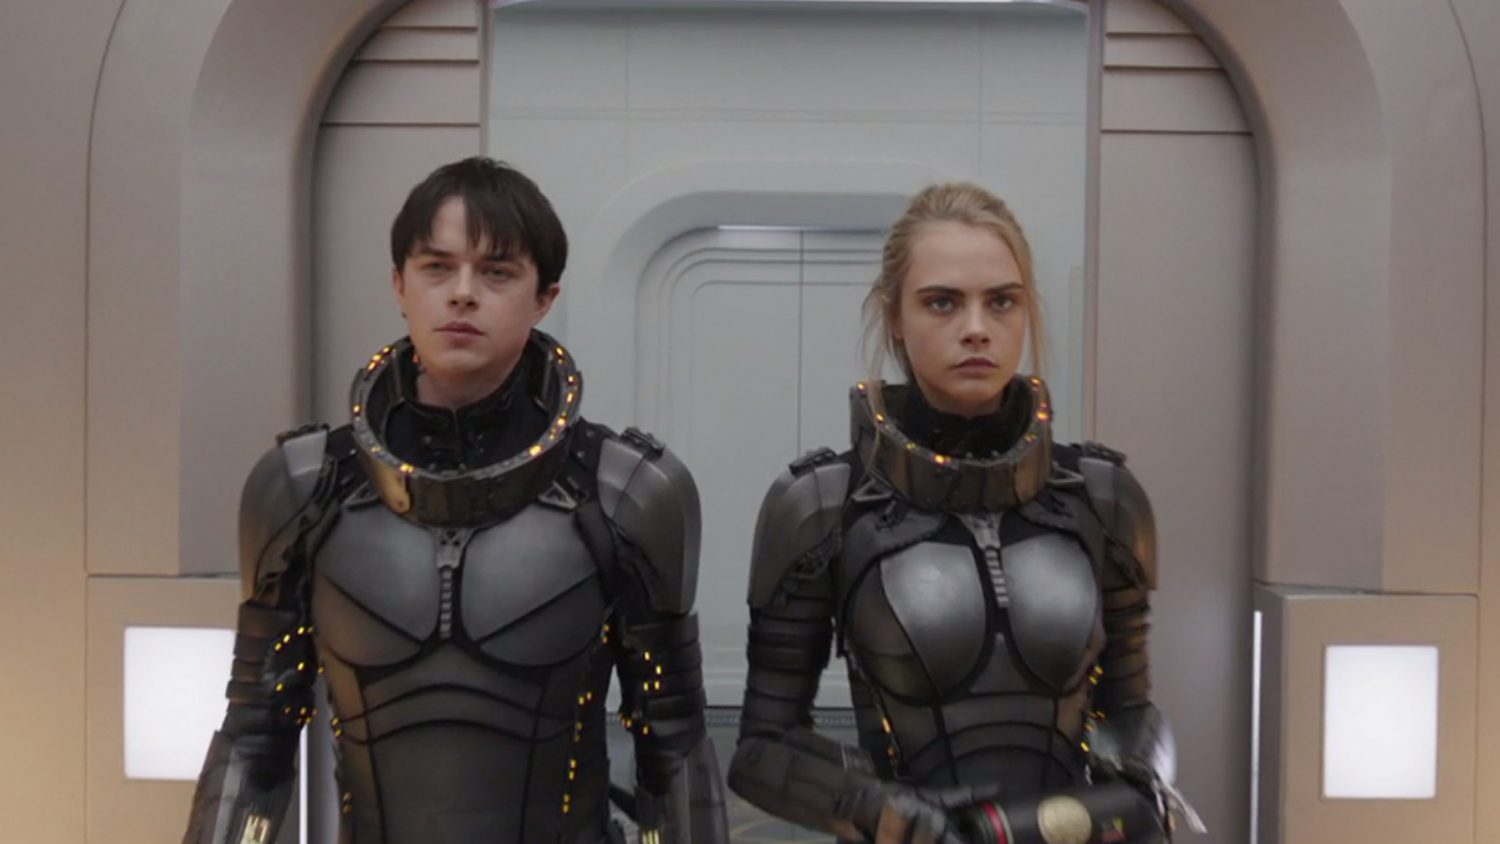 Crítica: Valerian e a Cidade dos Mil Planetas (Valerian And The City Of A Thousand Planets, França, 2017)